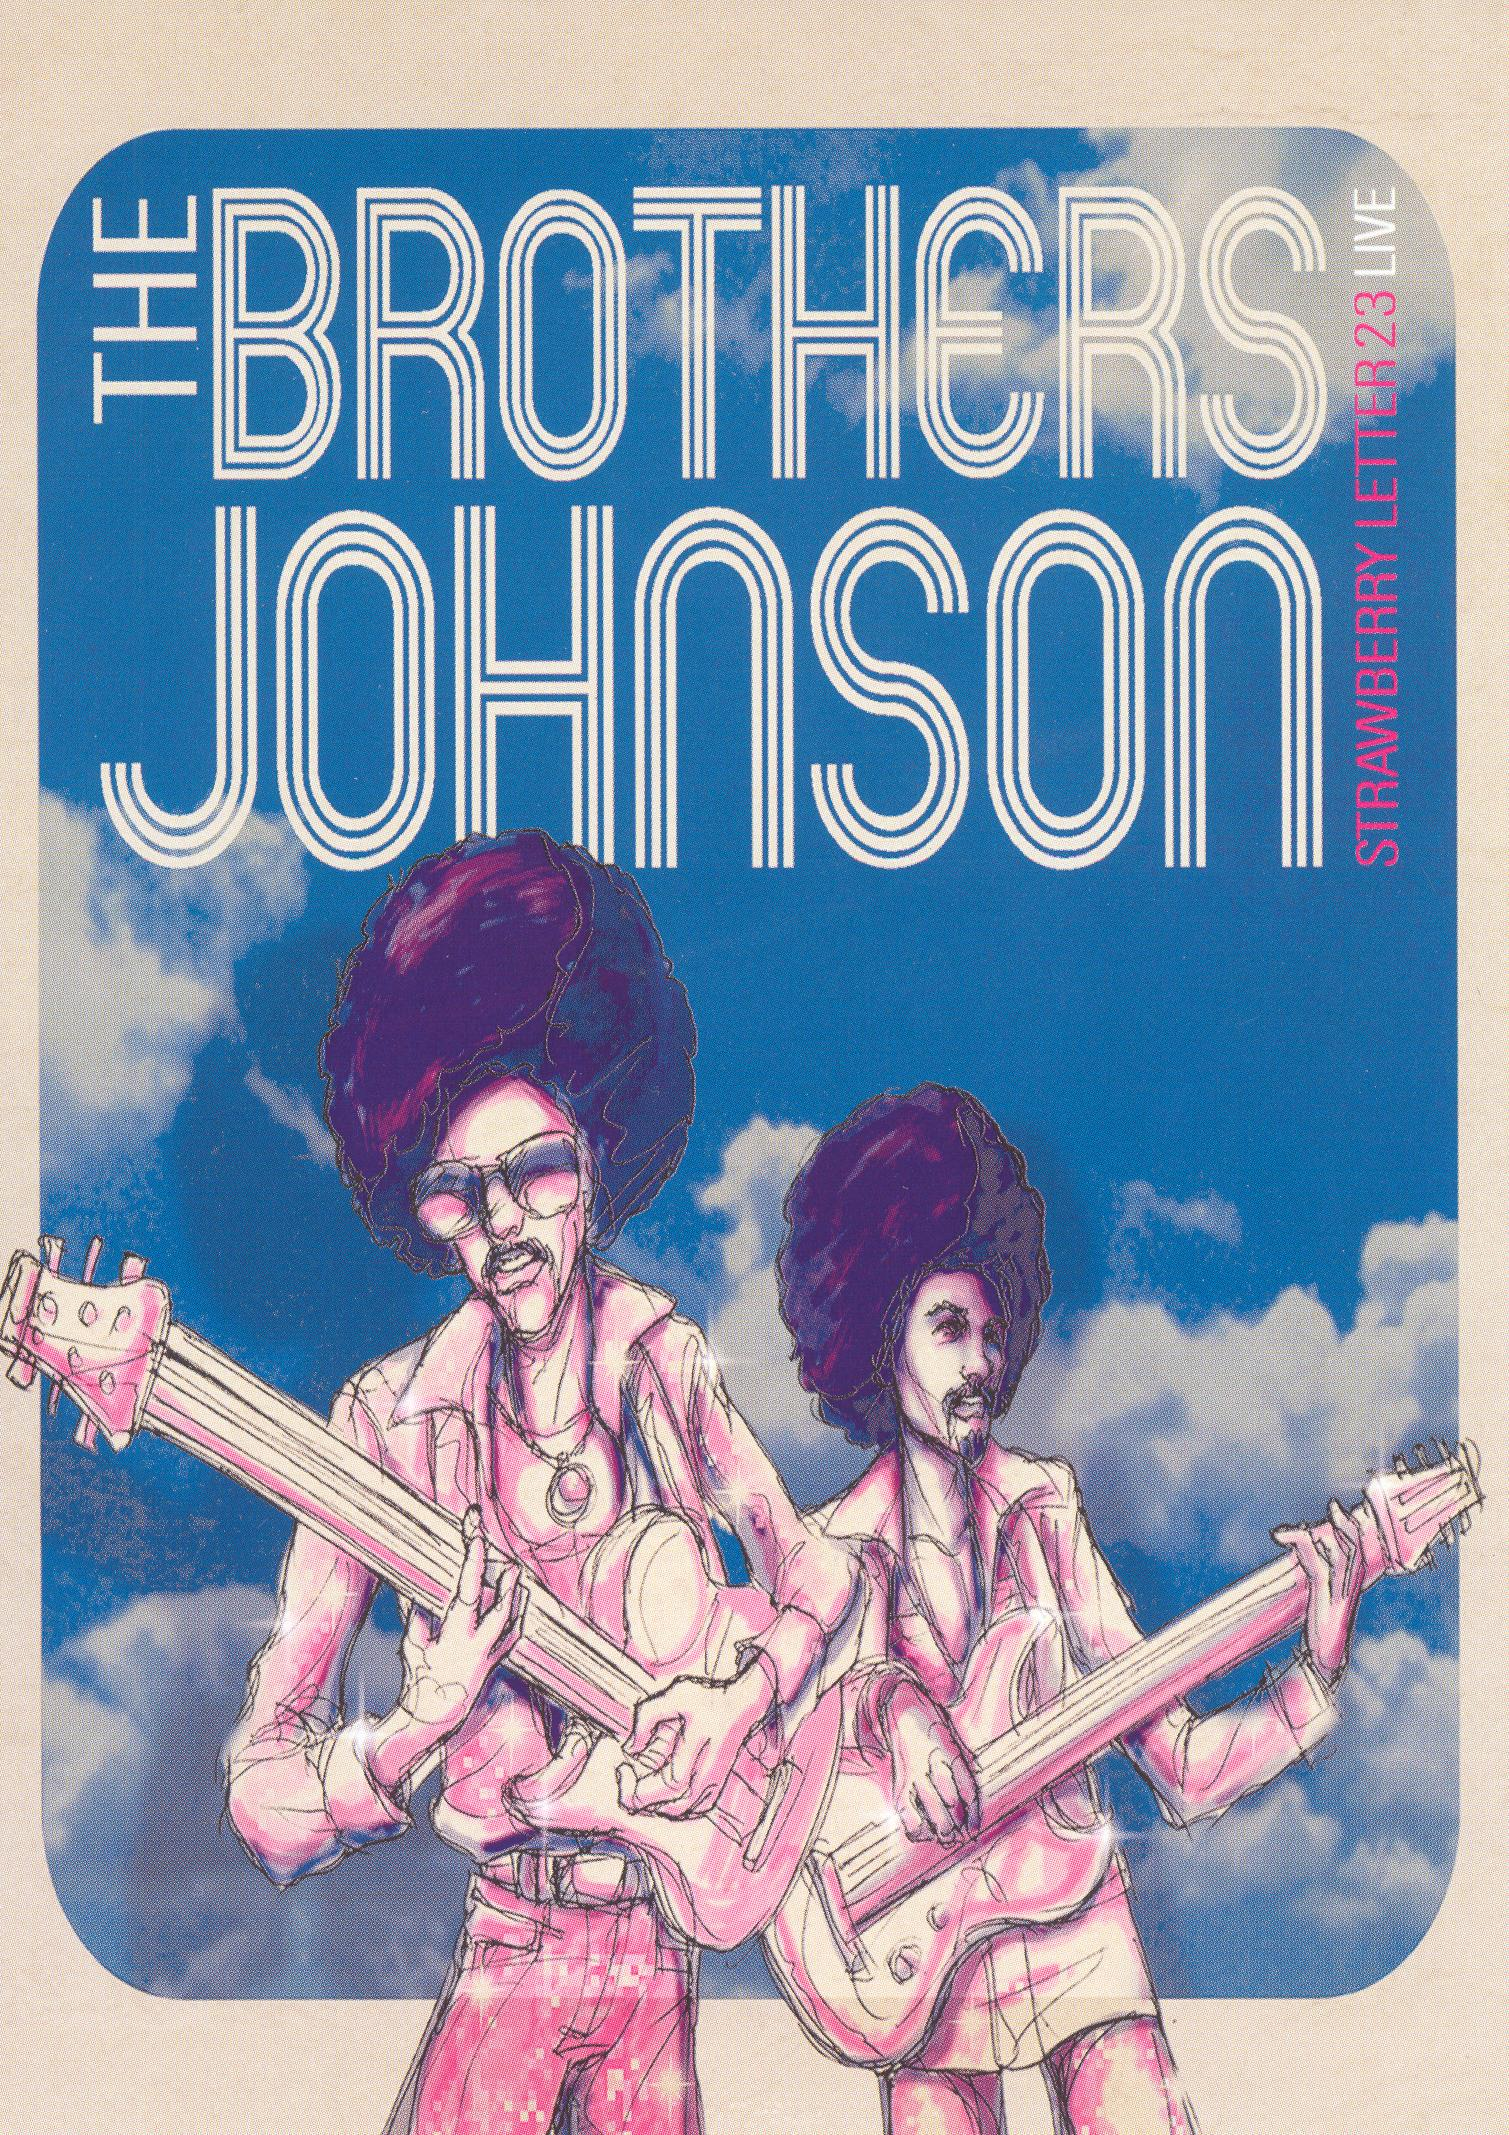 the brothers johnson strawberry letter 23 brothers johnson strawberry letter 23 live 2003 52143